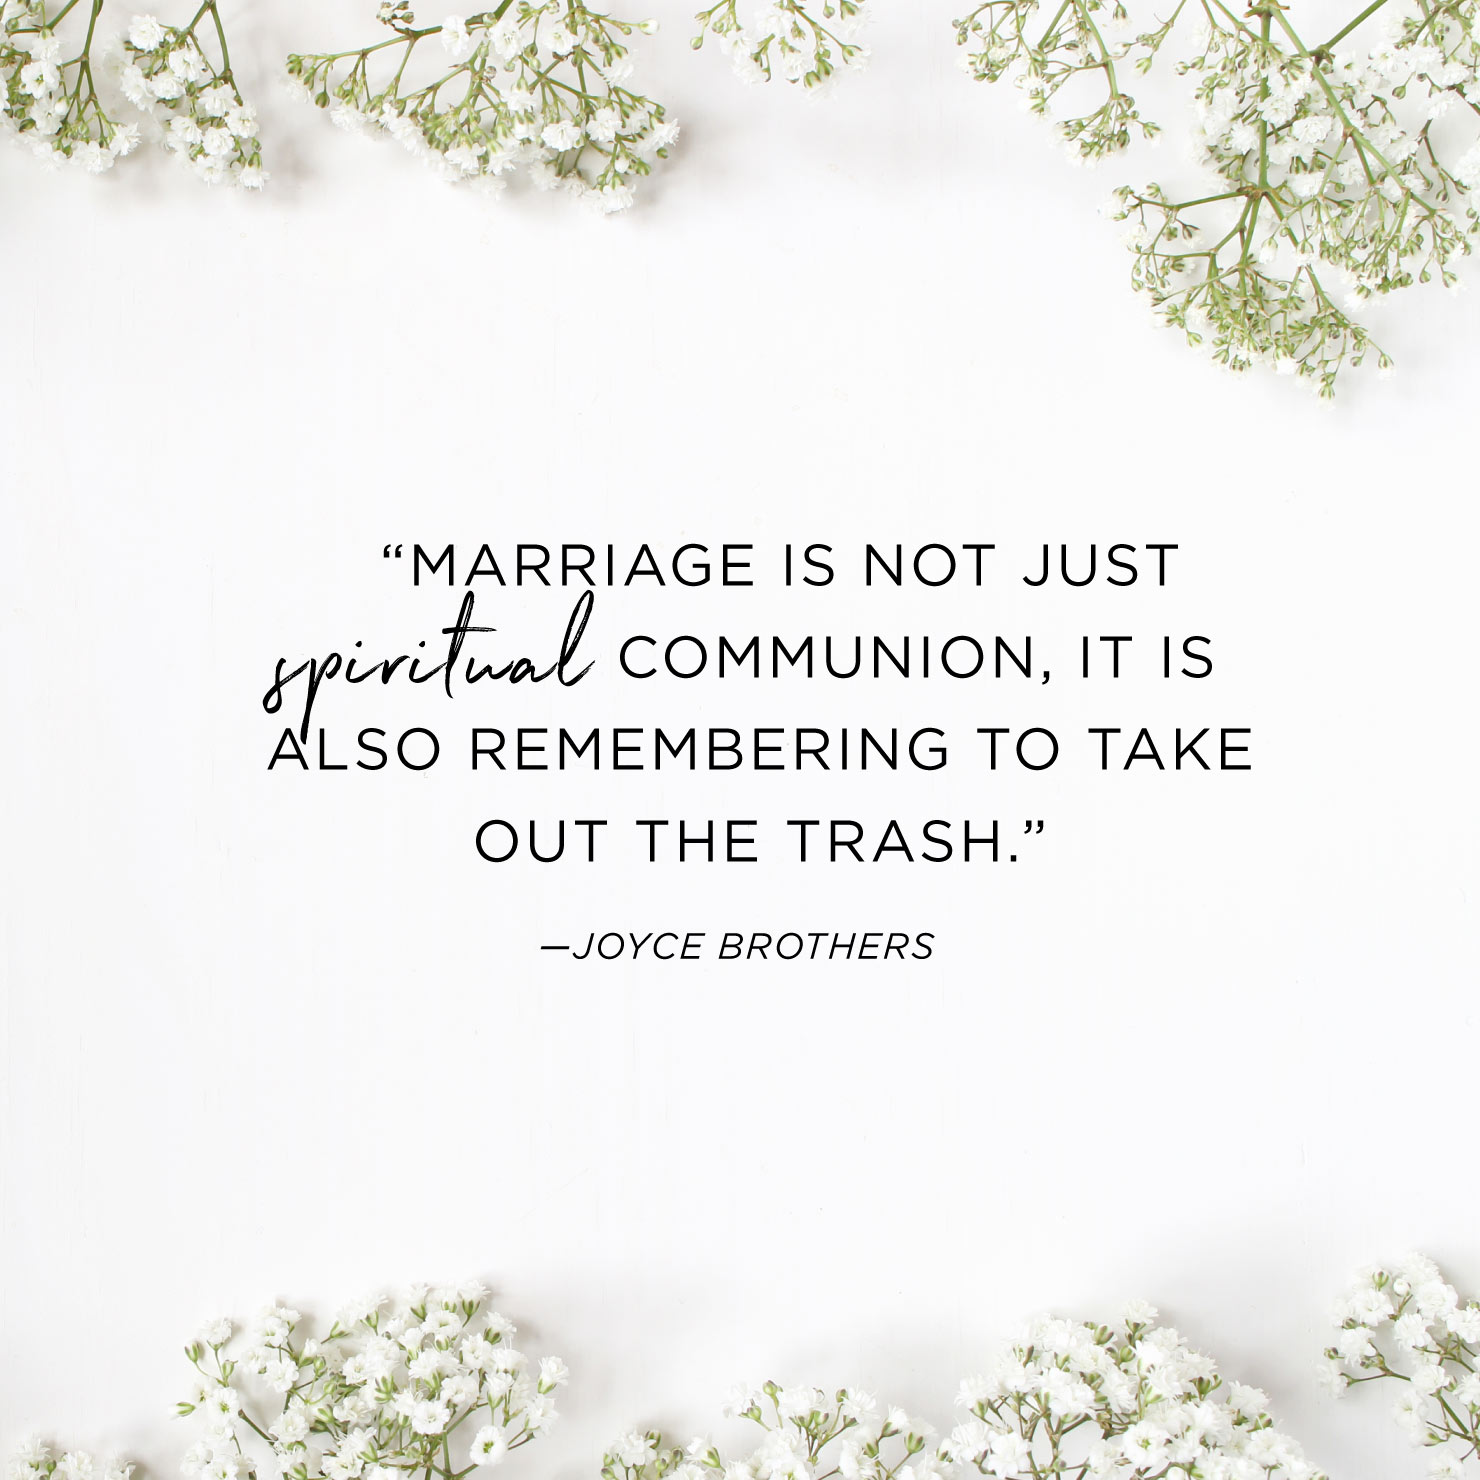 Quote above background image: Marriage is not just spiritual communion, it is also remembering to take out the trash. - Joyce Brothers